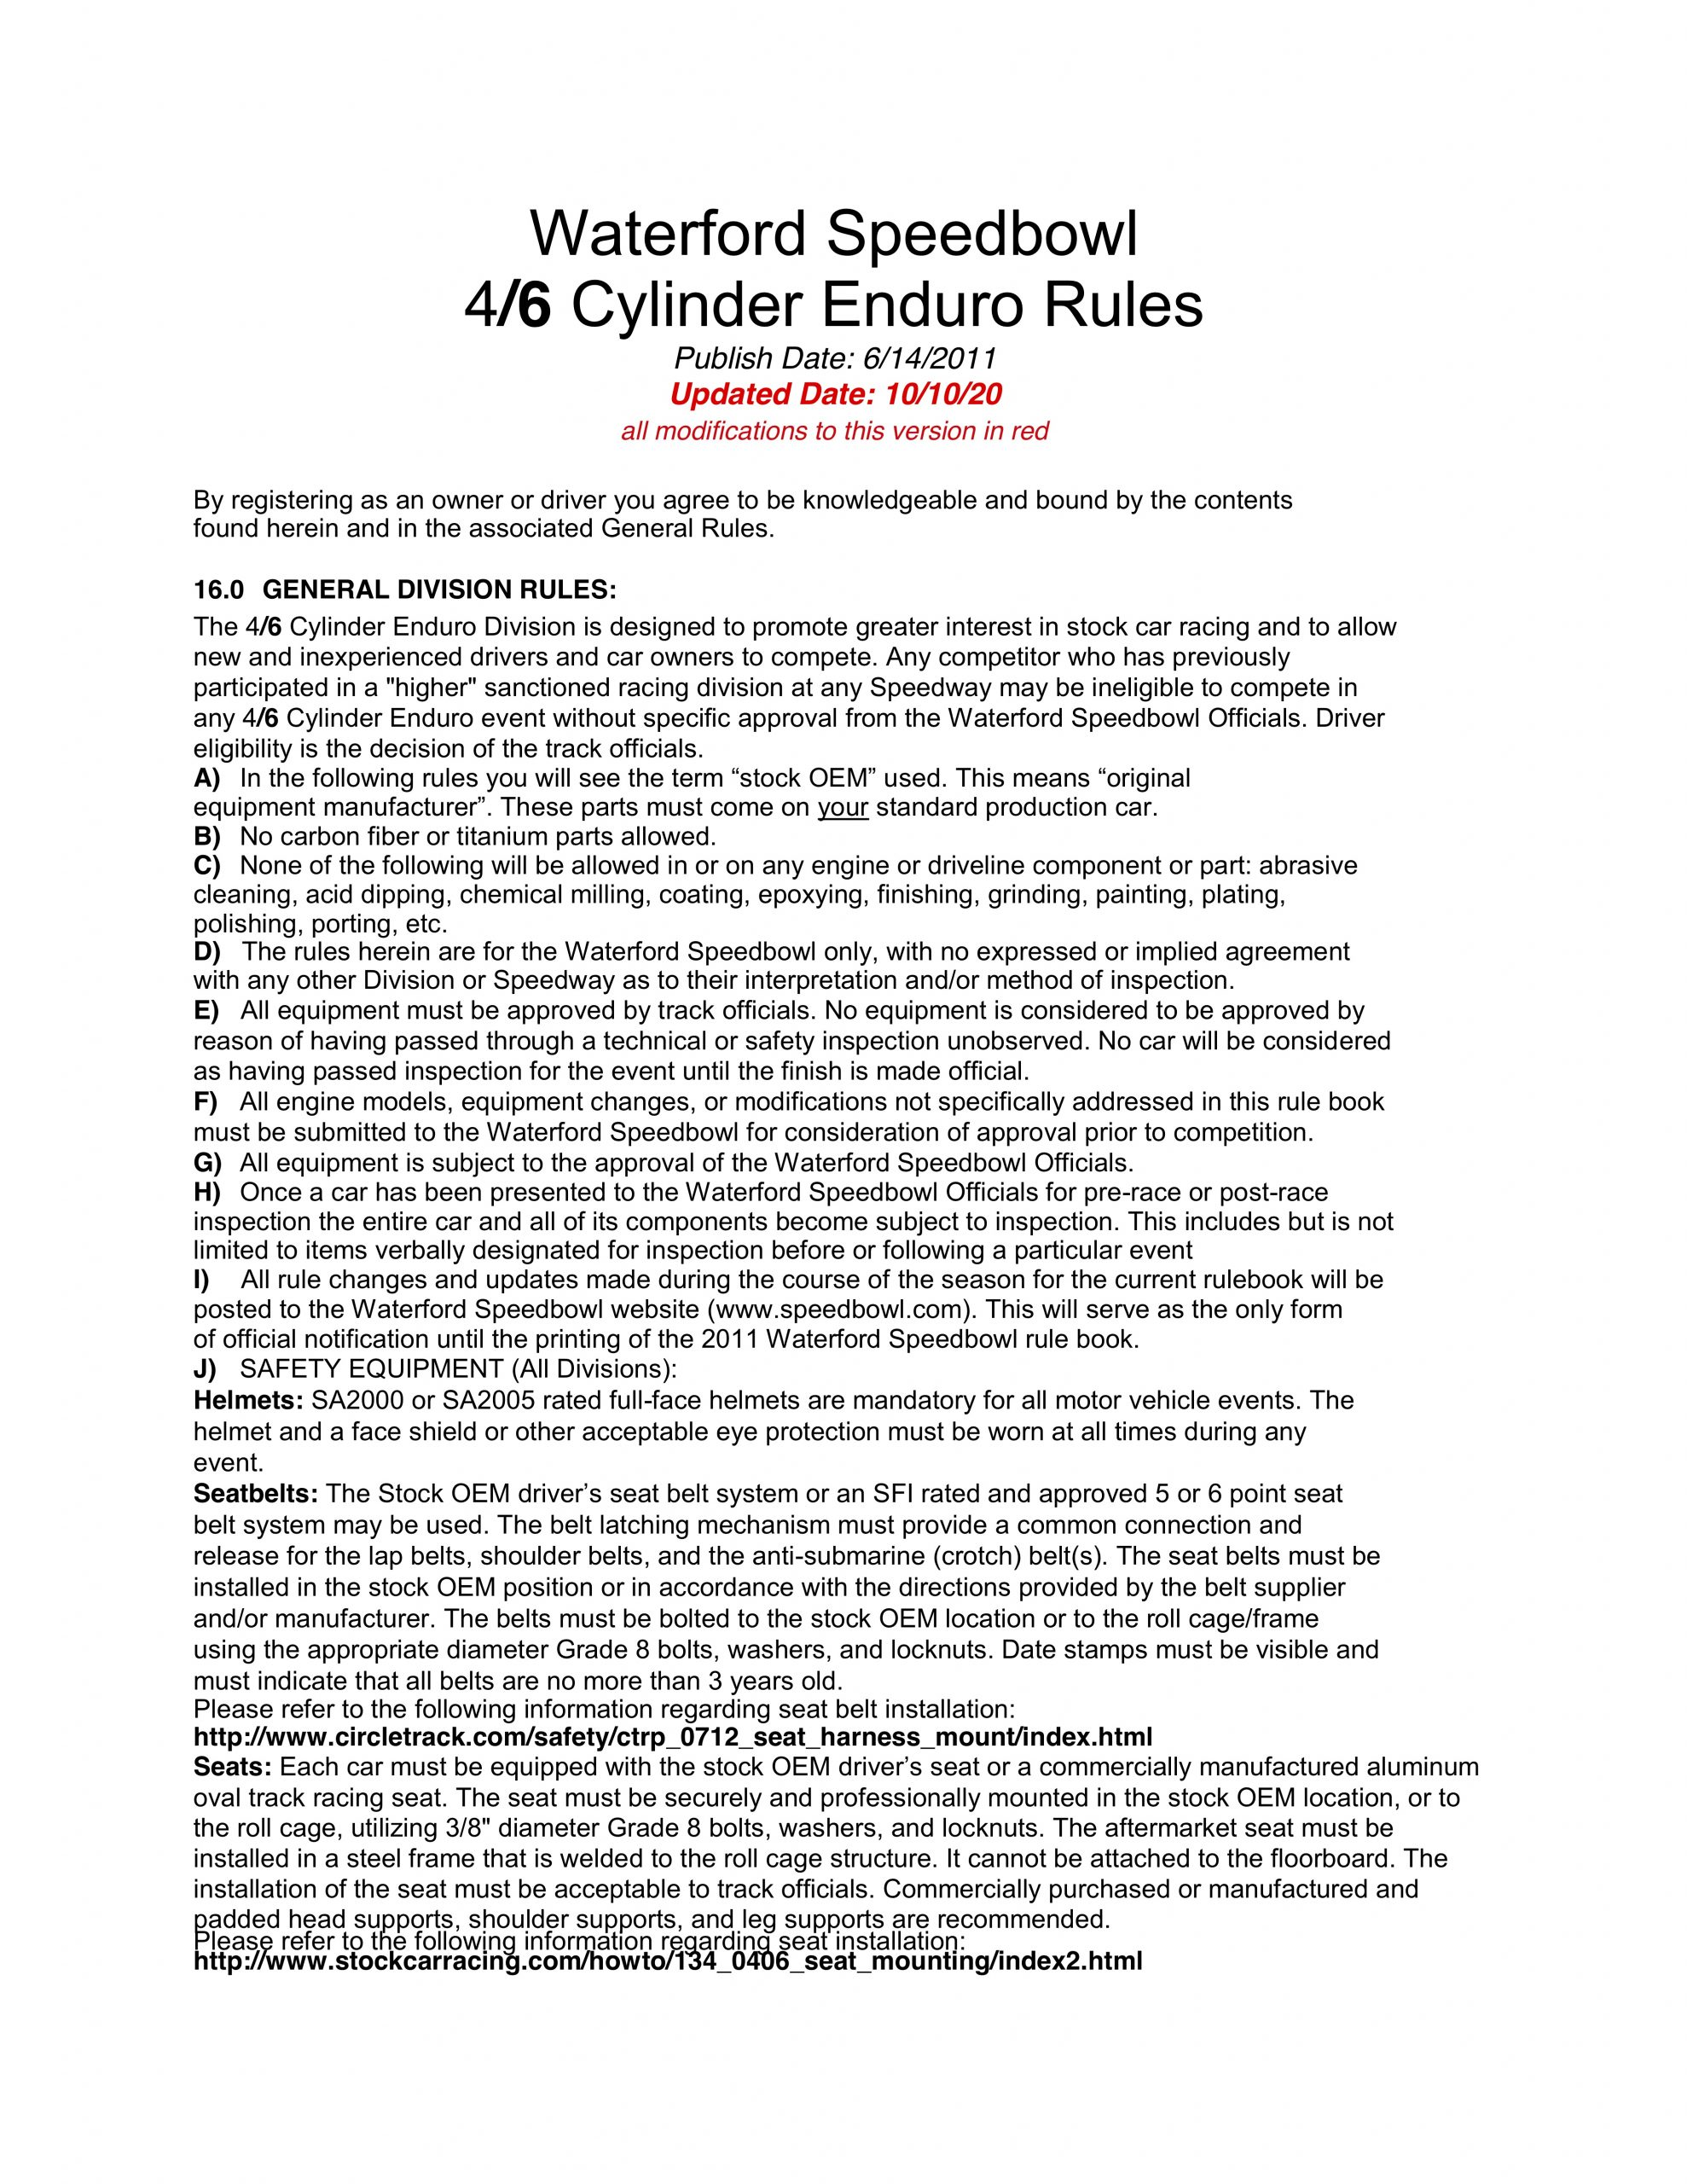 2020 4/6 Cylinder Enduro Rules